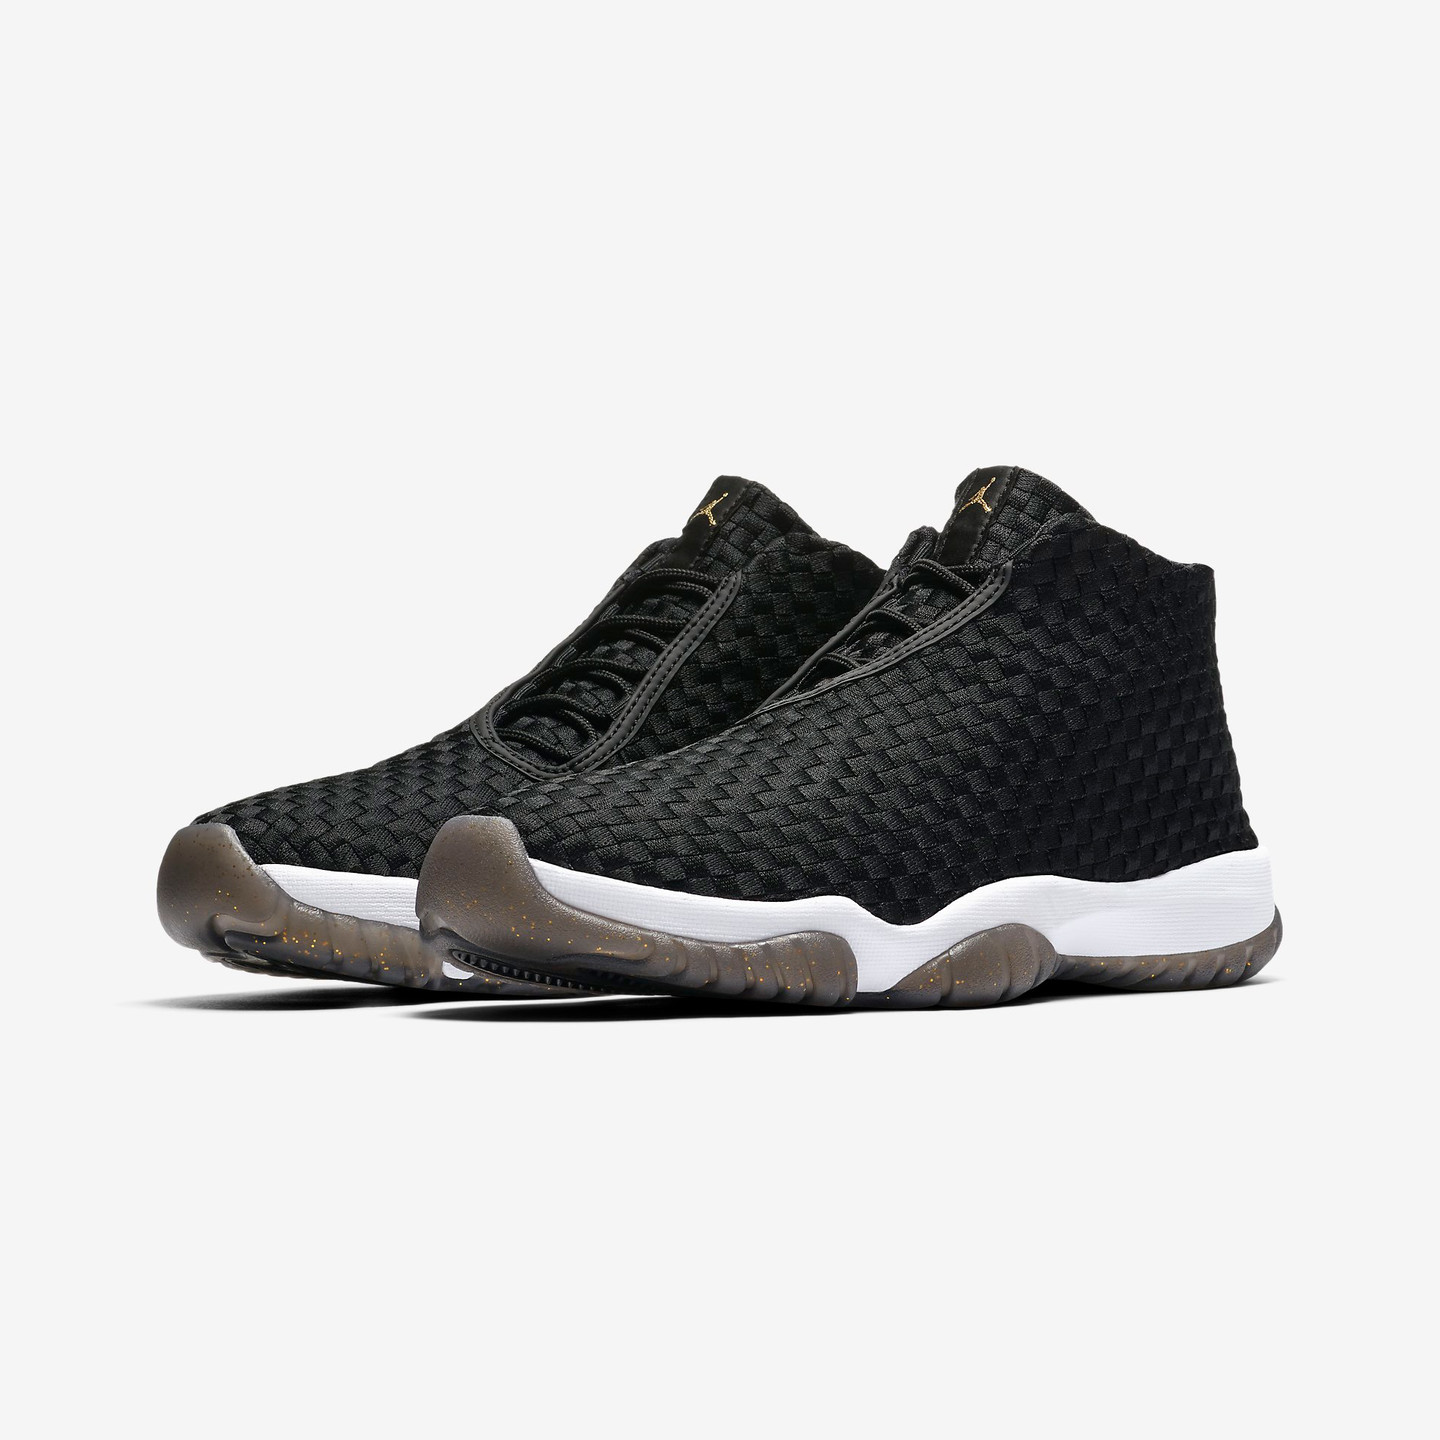 Jordan Air Jordan Future Black / White / Metallic Gold 656503-031